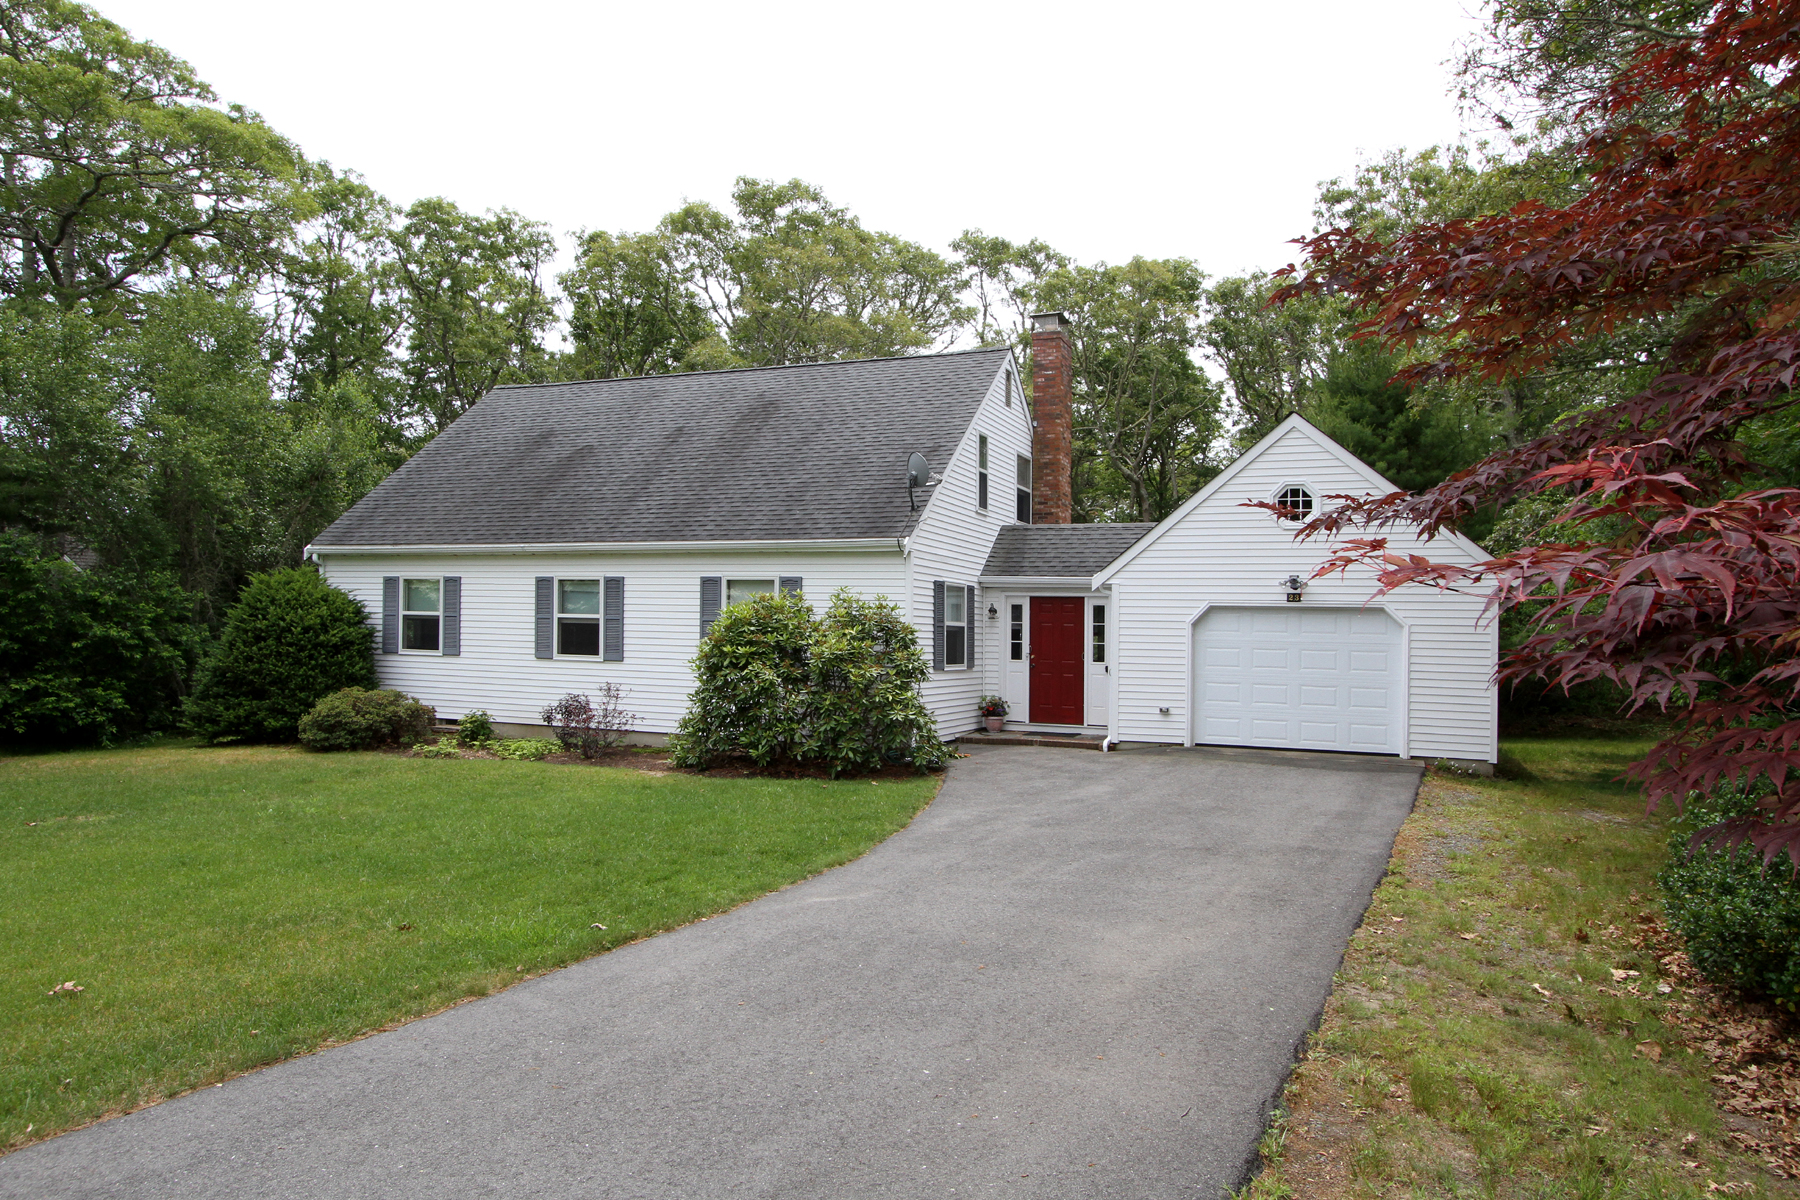 Single Family Home for Sale at IDYLLIC ORLEANS CHARMER 23 Baywood Drive Orleans, Massachusetts 02653 United States